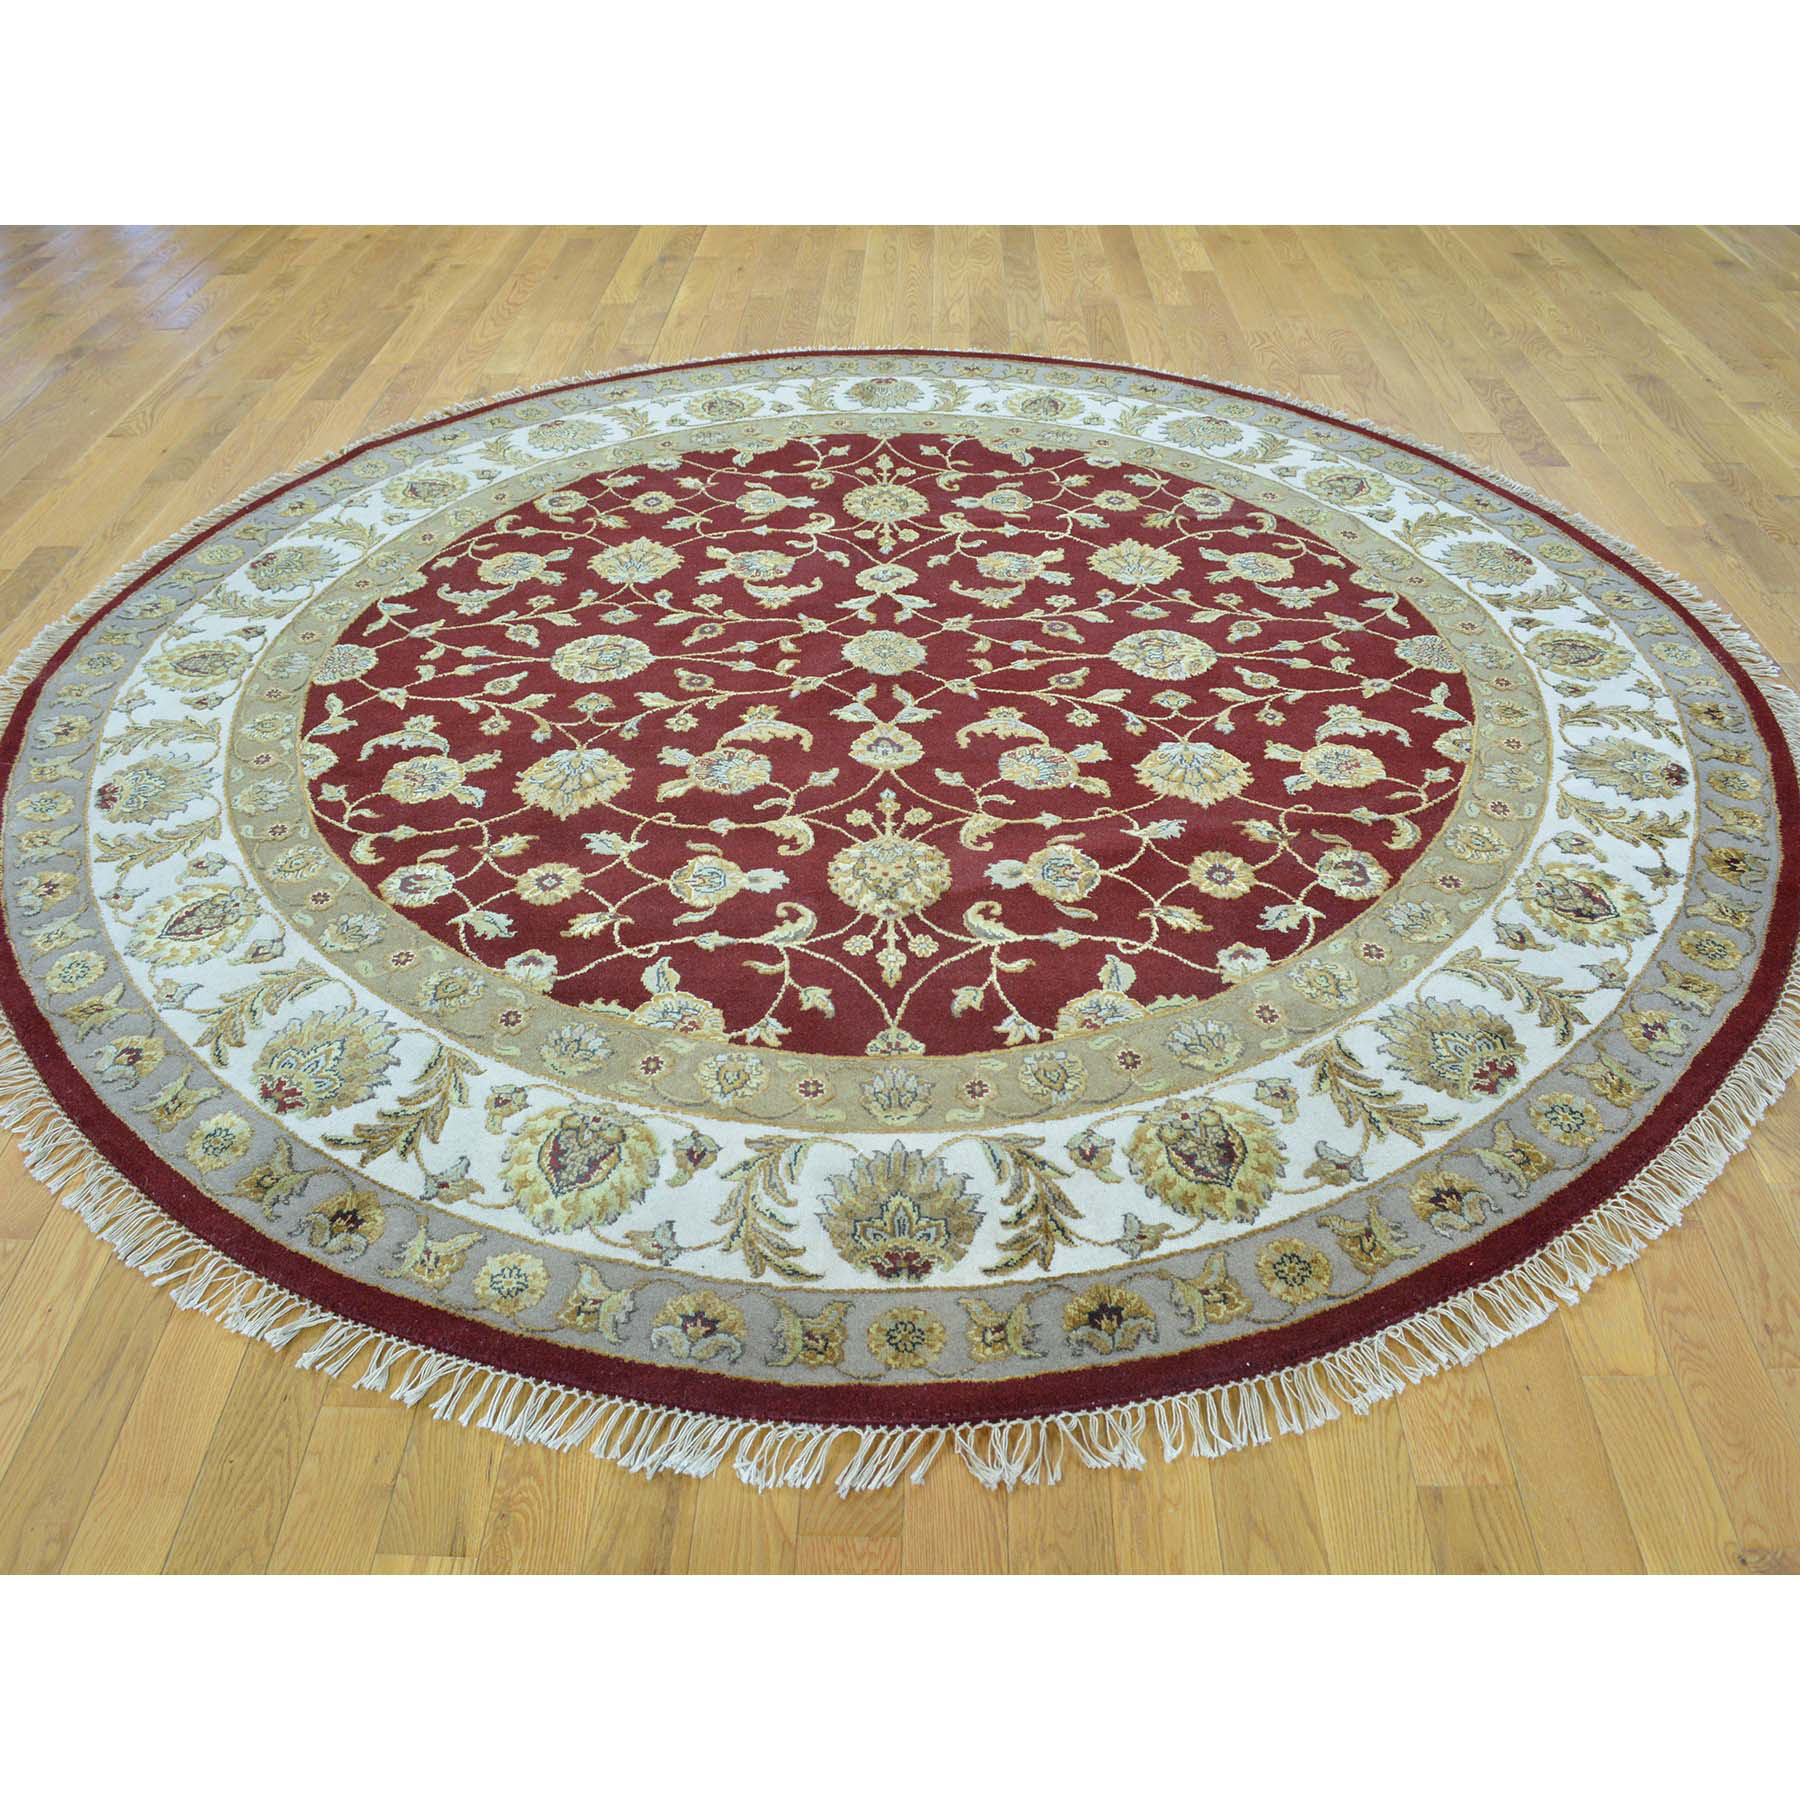 8-1 x8-1  Half Wool And Half Silk Rajasthan Hand Knotted Round Rug